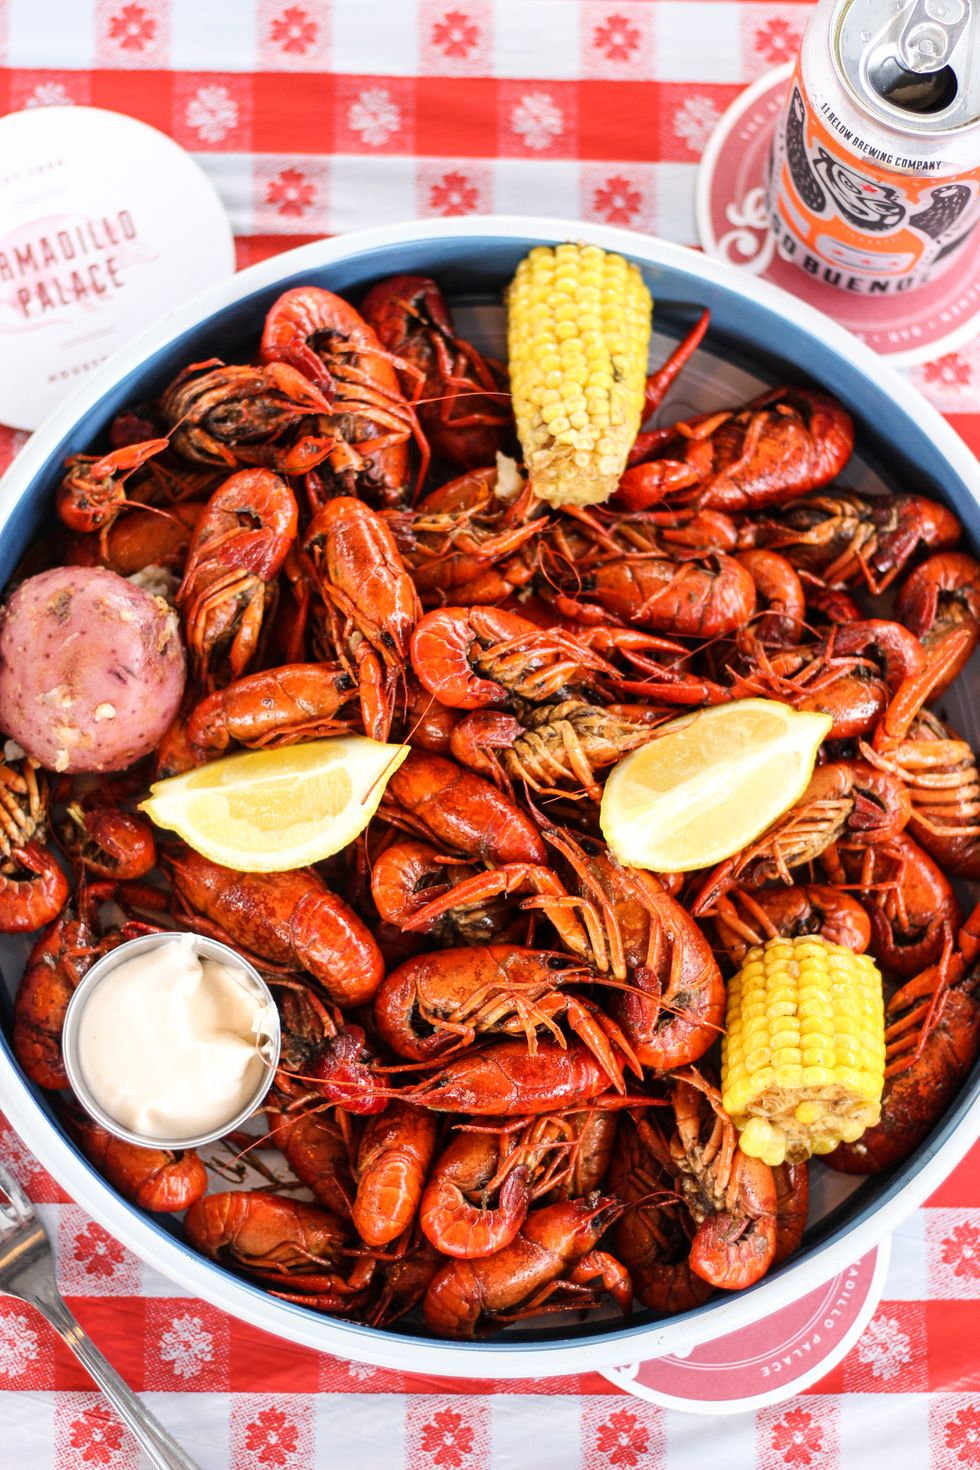 Goode Co Seafood Crawfish (1)